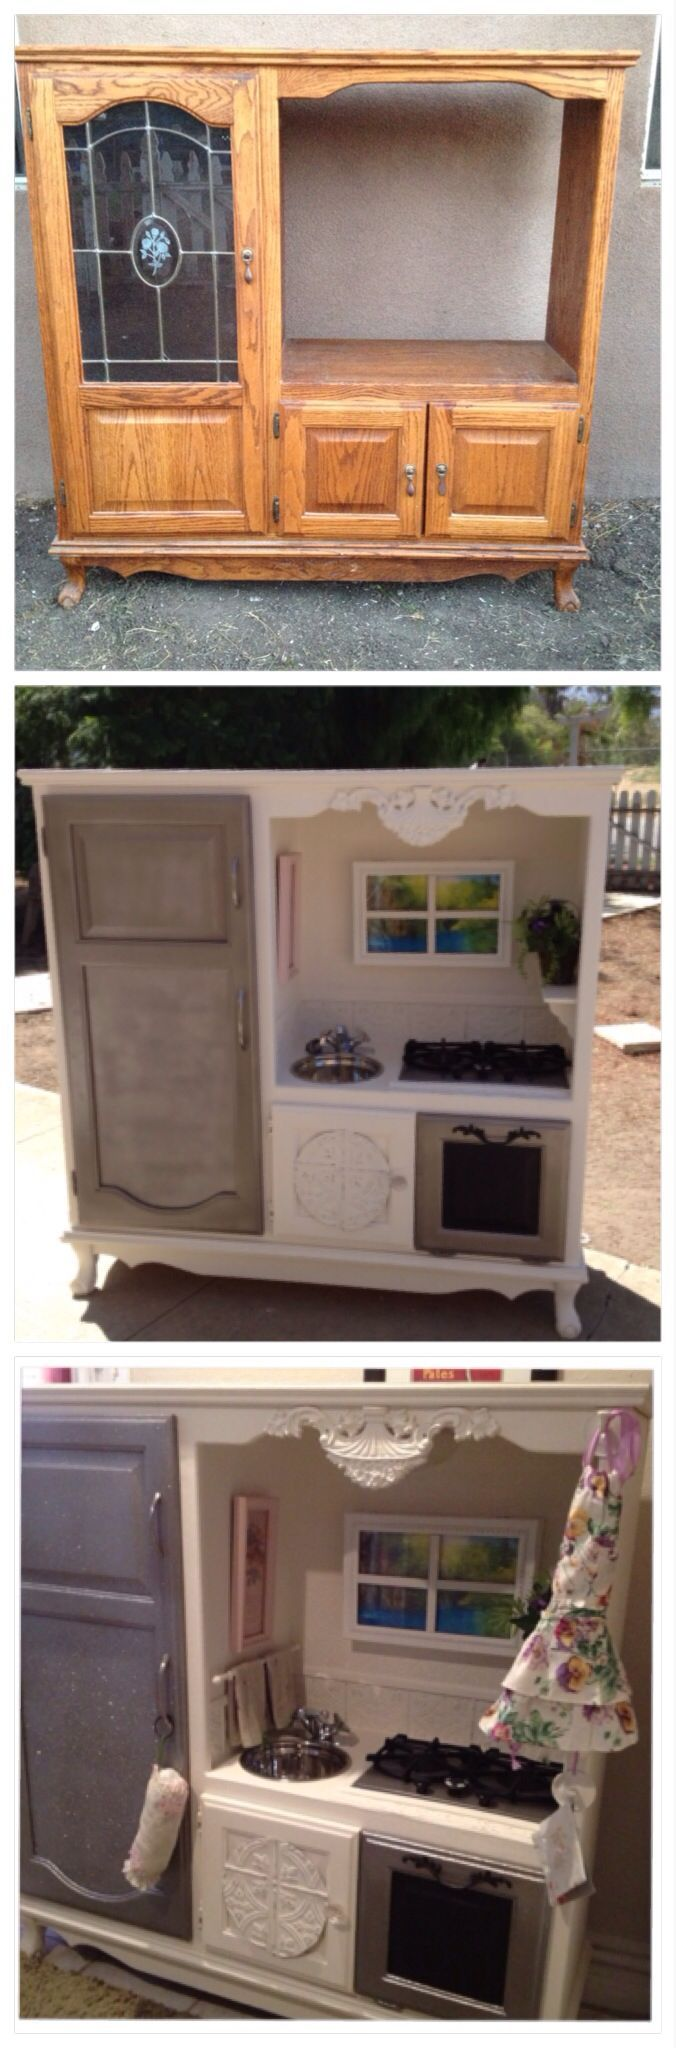 Entertainment center play kitchen we made for our granddaughter ...